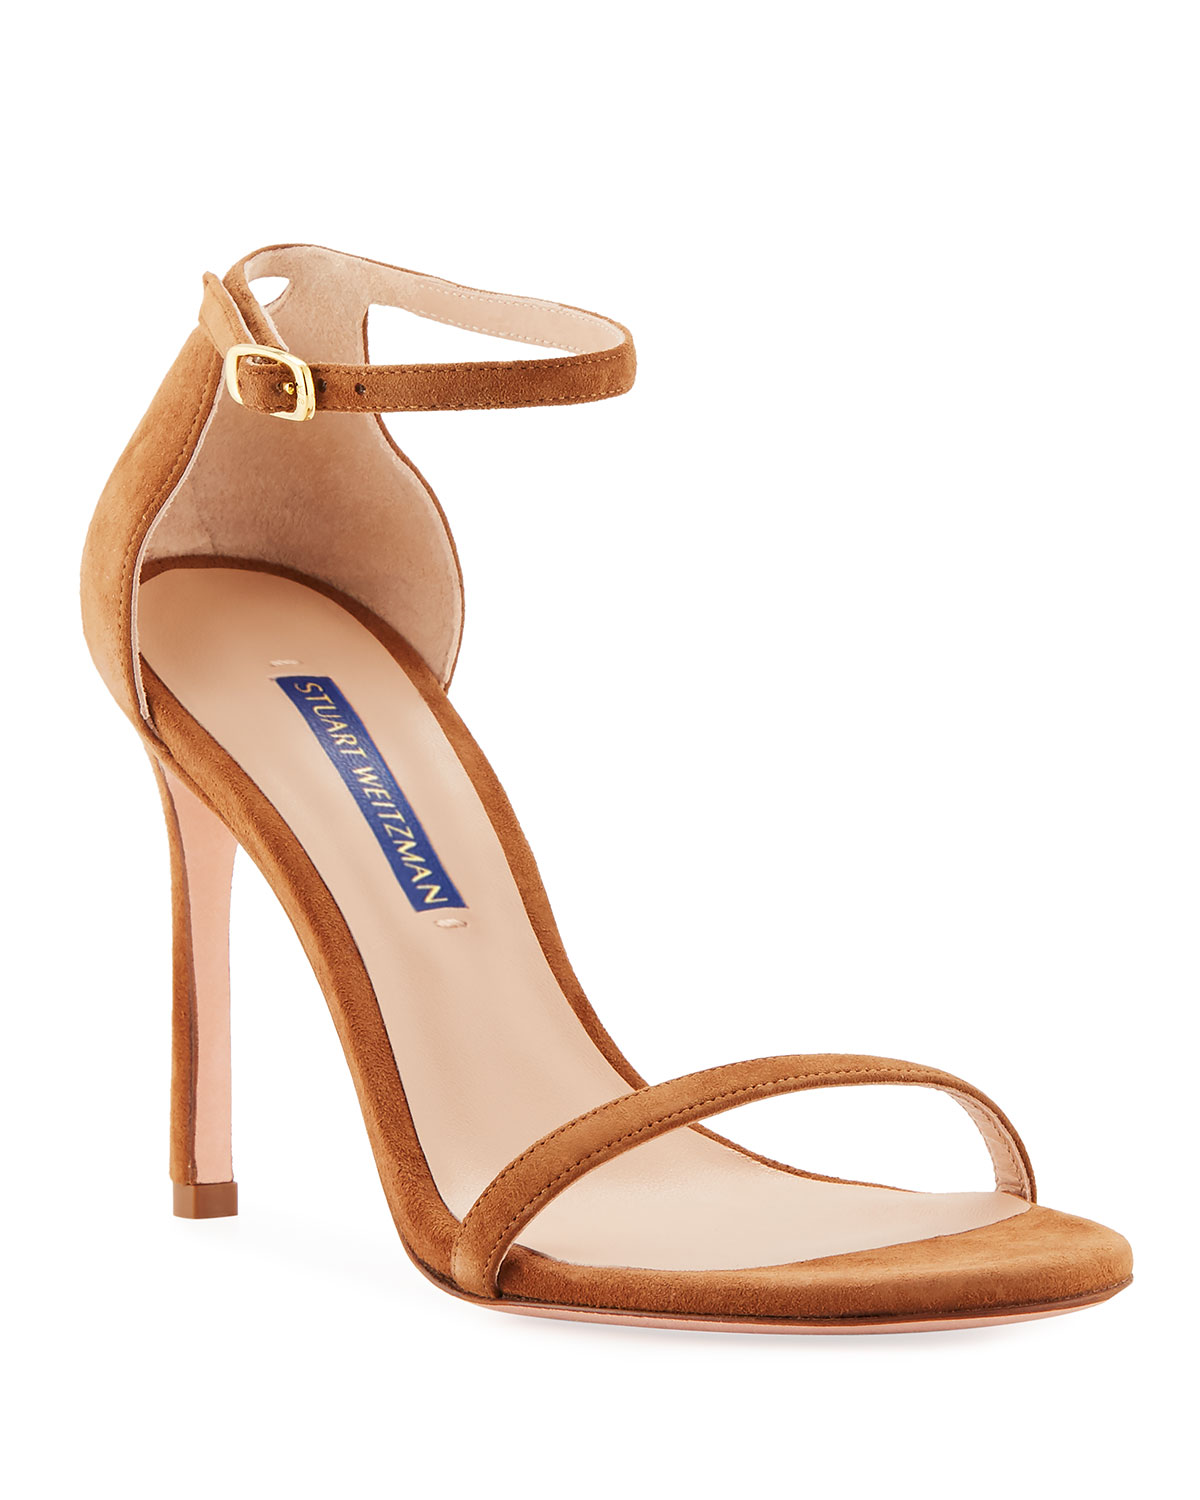 Stuart Weitzman Sandals Nudistsong Suede Ankle-Wrap Sandals